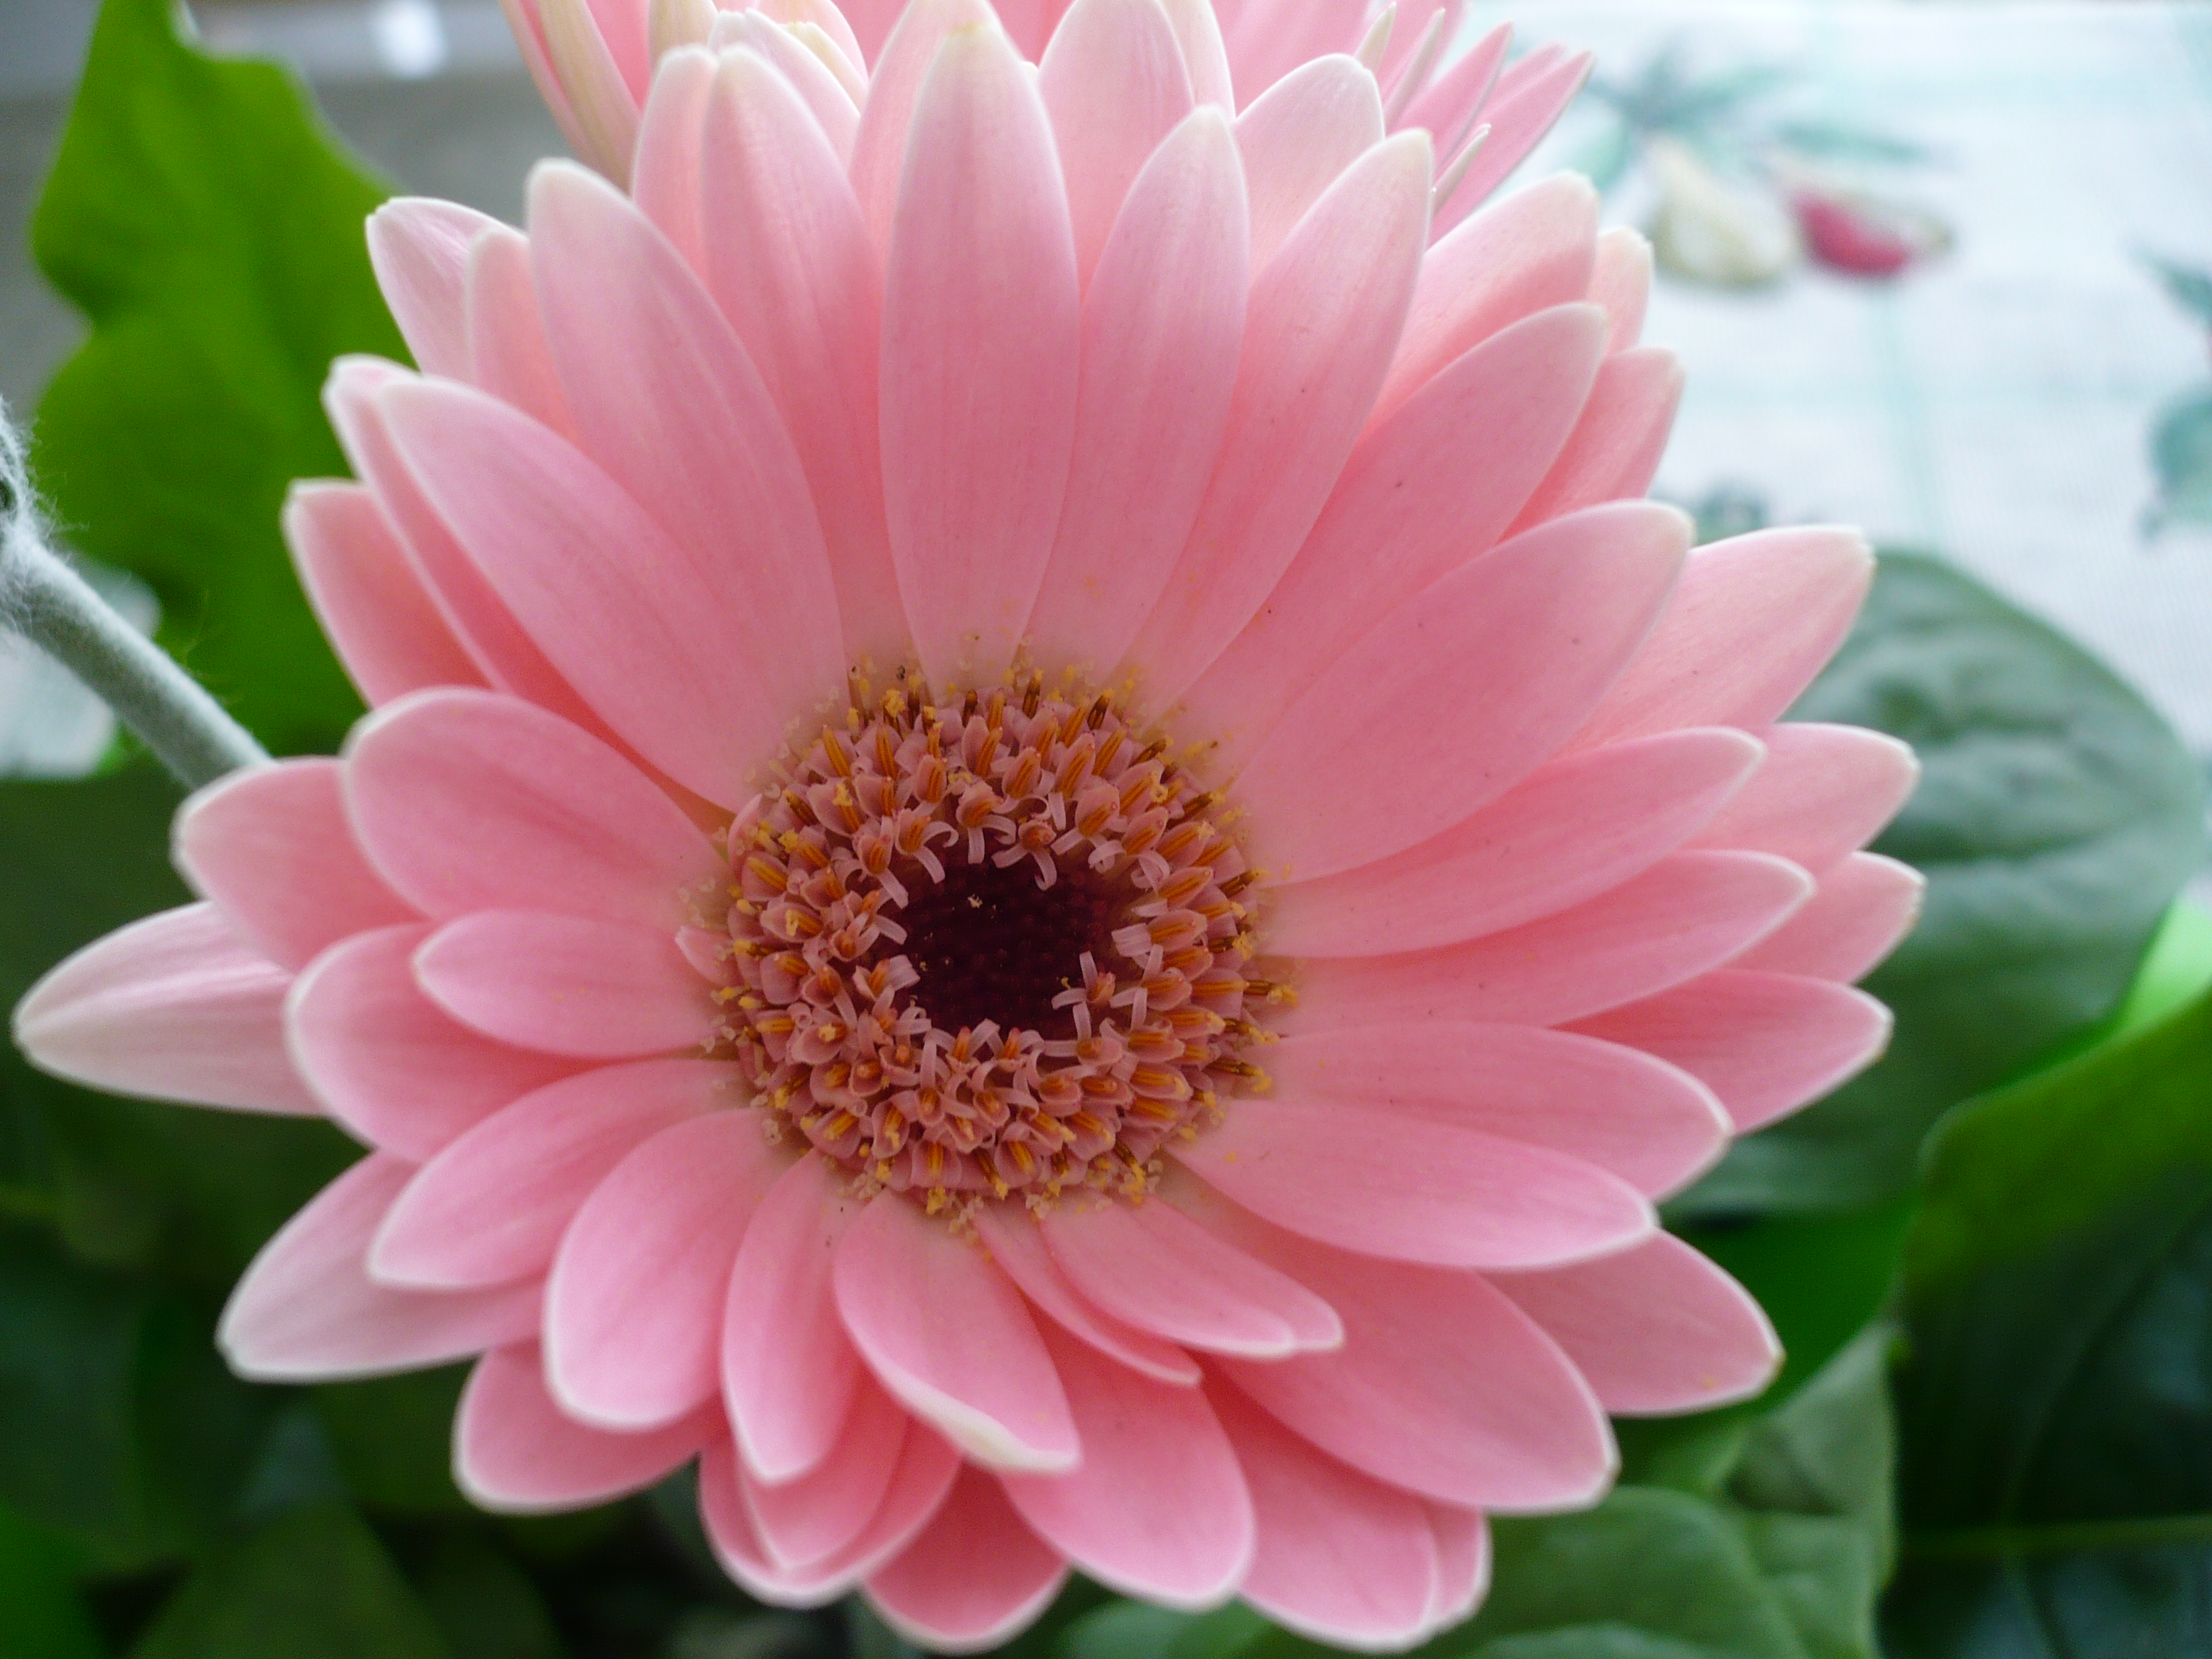 Free pictures of pink flowers png royalty free 17 Best images about Flowers on Pinterest | Pink daisy, Cherry ... png royalty free